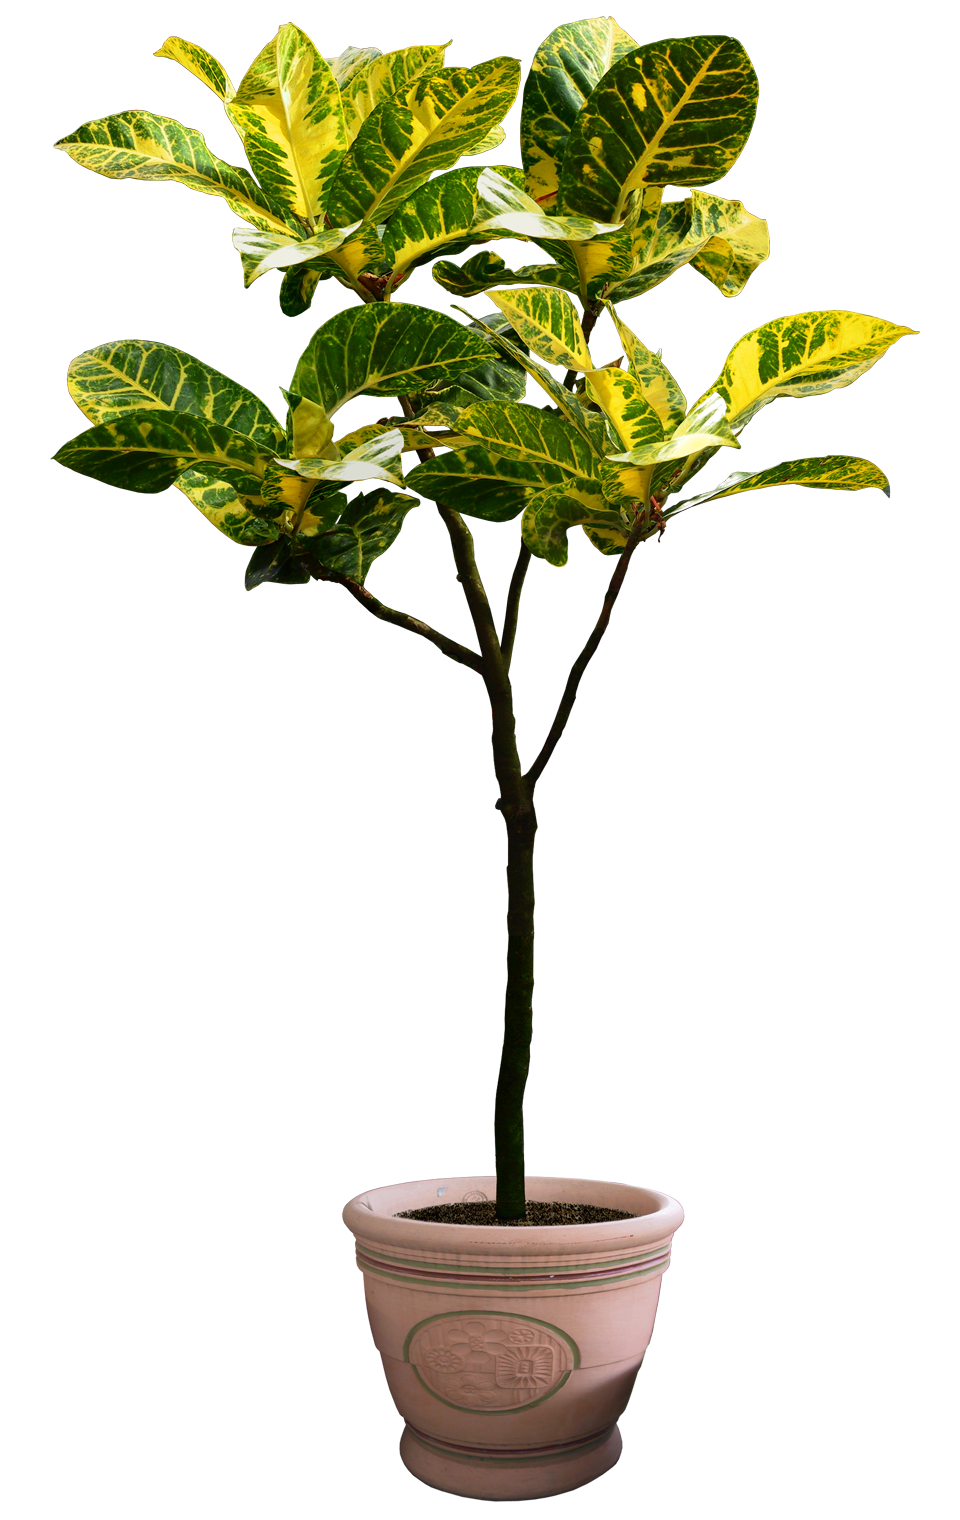 Top view plants 02 2d plant entourage for architecture - Architecture Psd Png Cutout Tree Psdfoliage Plantsgrass